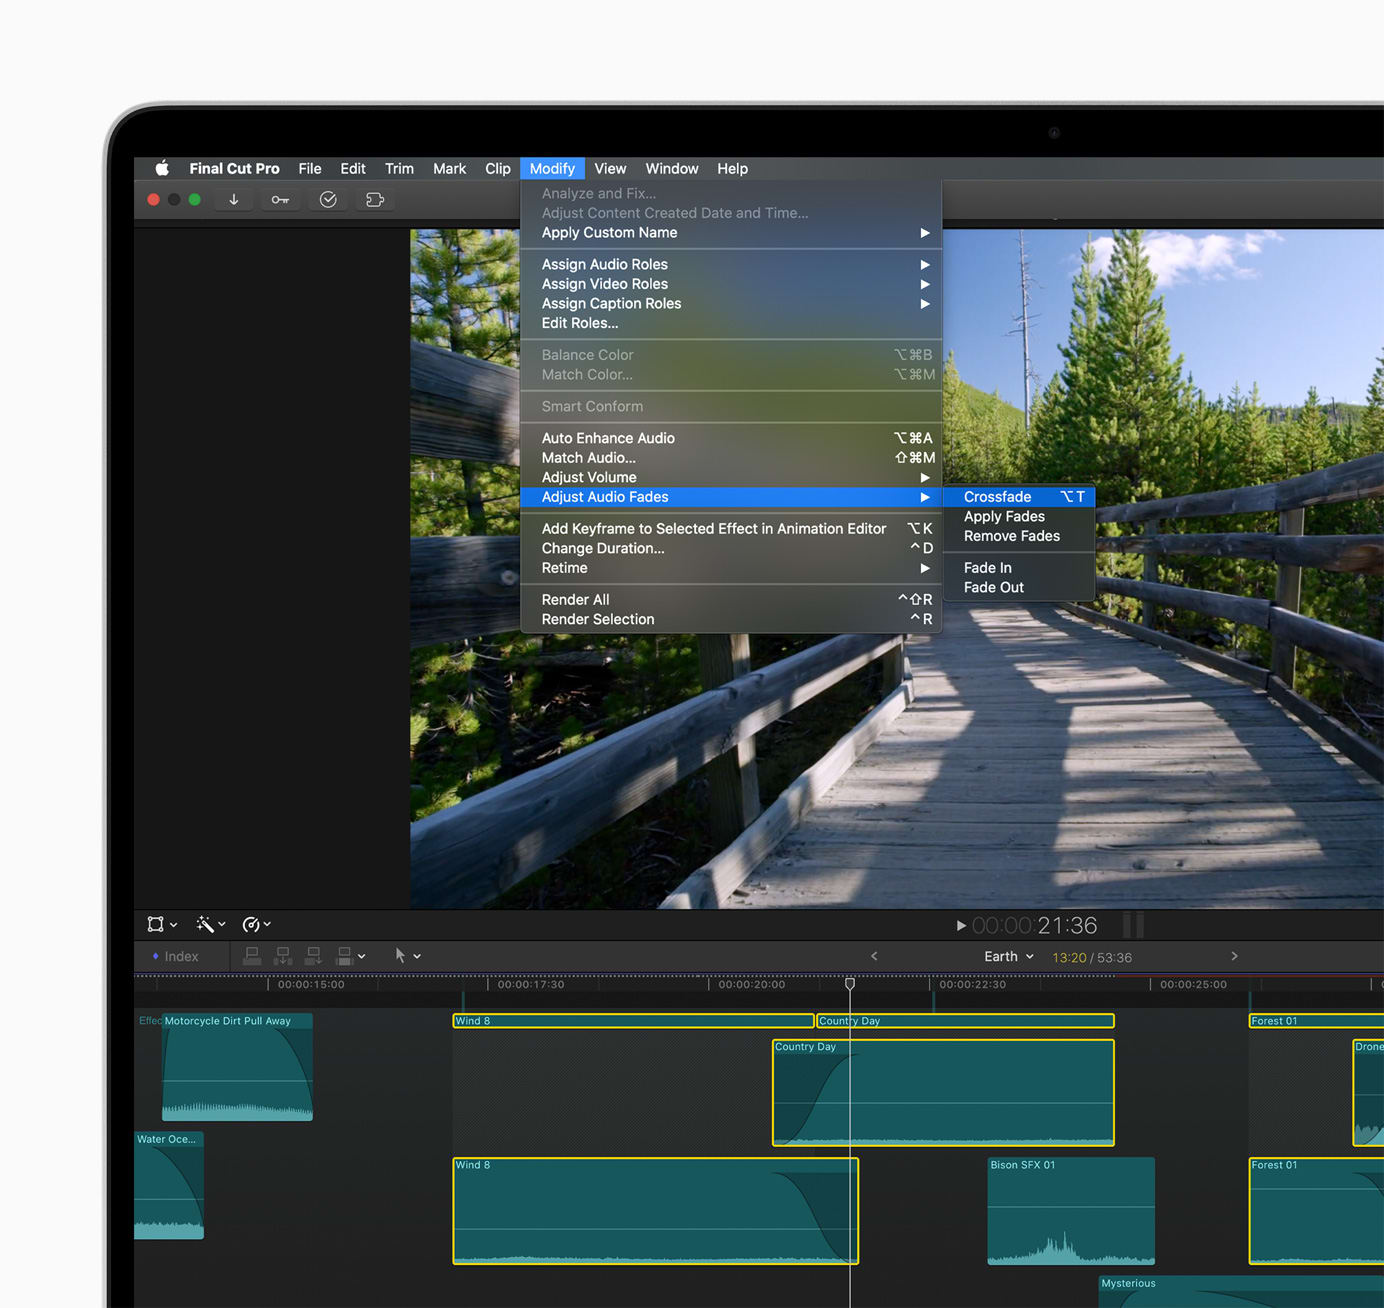 final-cut-pro-x-now-has-updated-workflow-upgrades-20200825-4